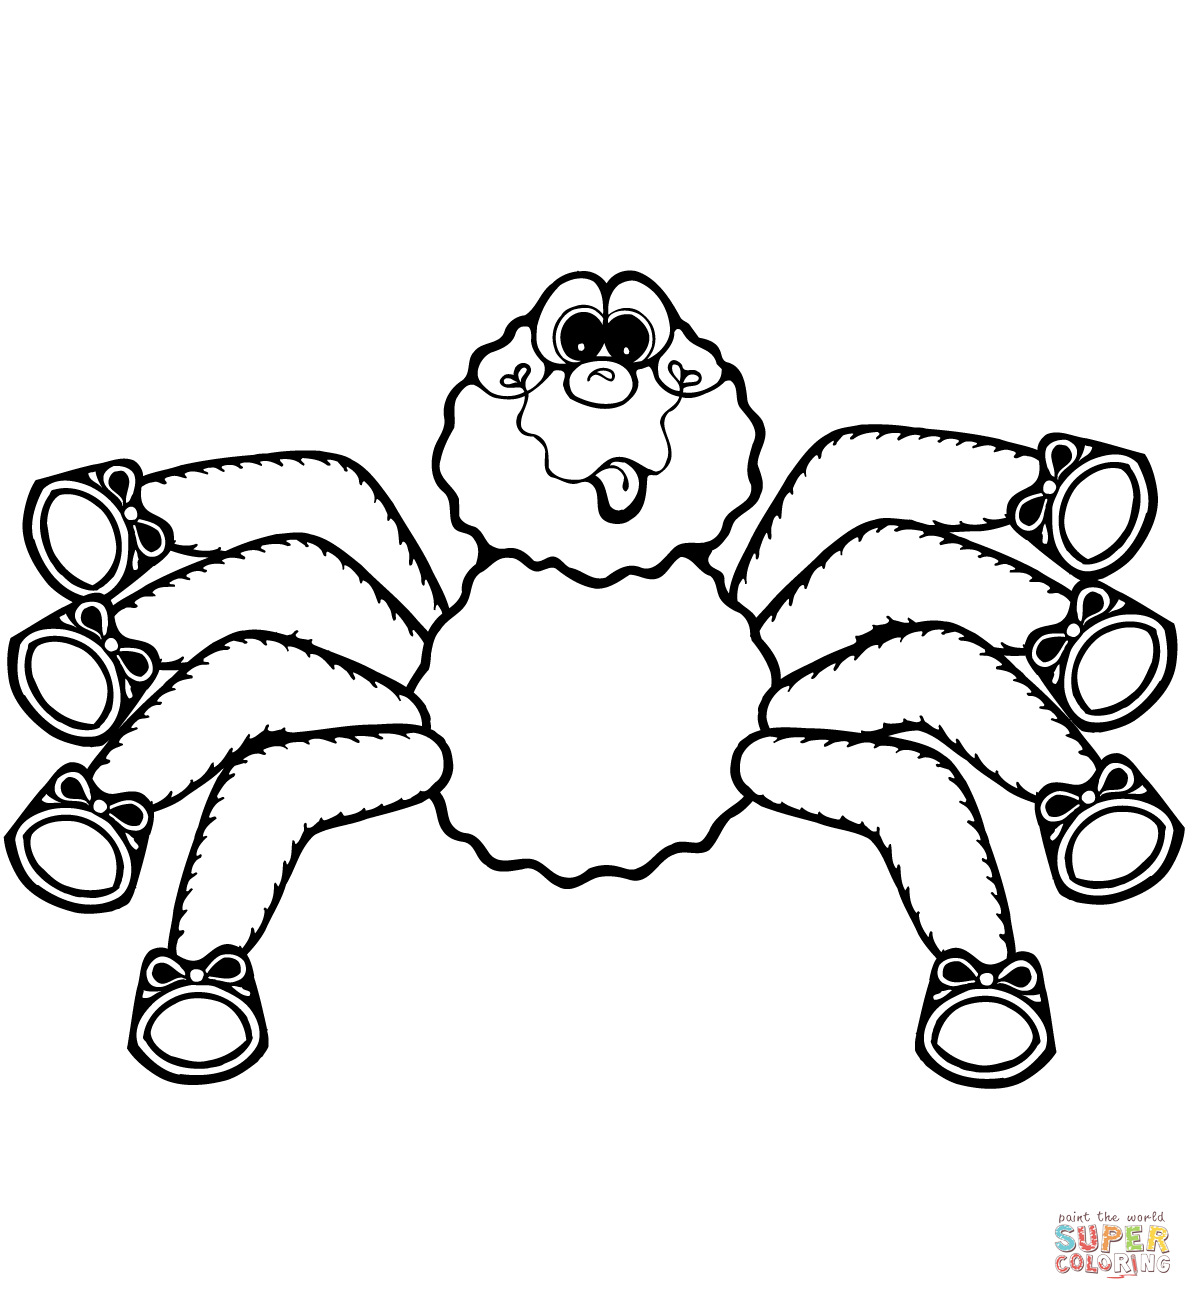 Free Spider Coloring Pages Printable, Download Free Clip Art, Free ... | 1300x1193